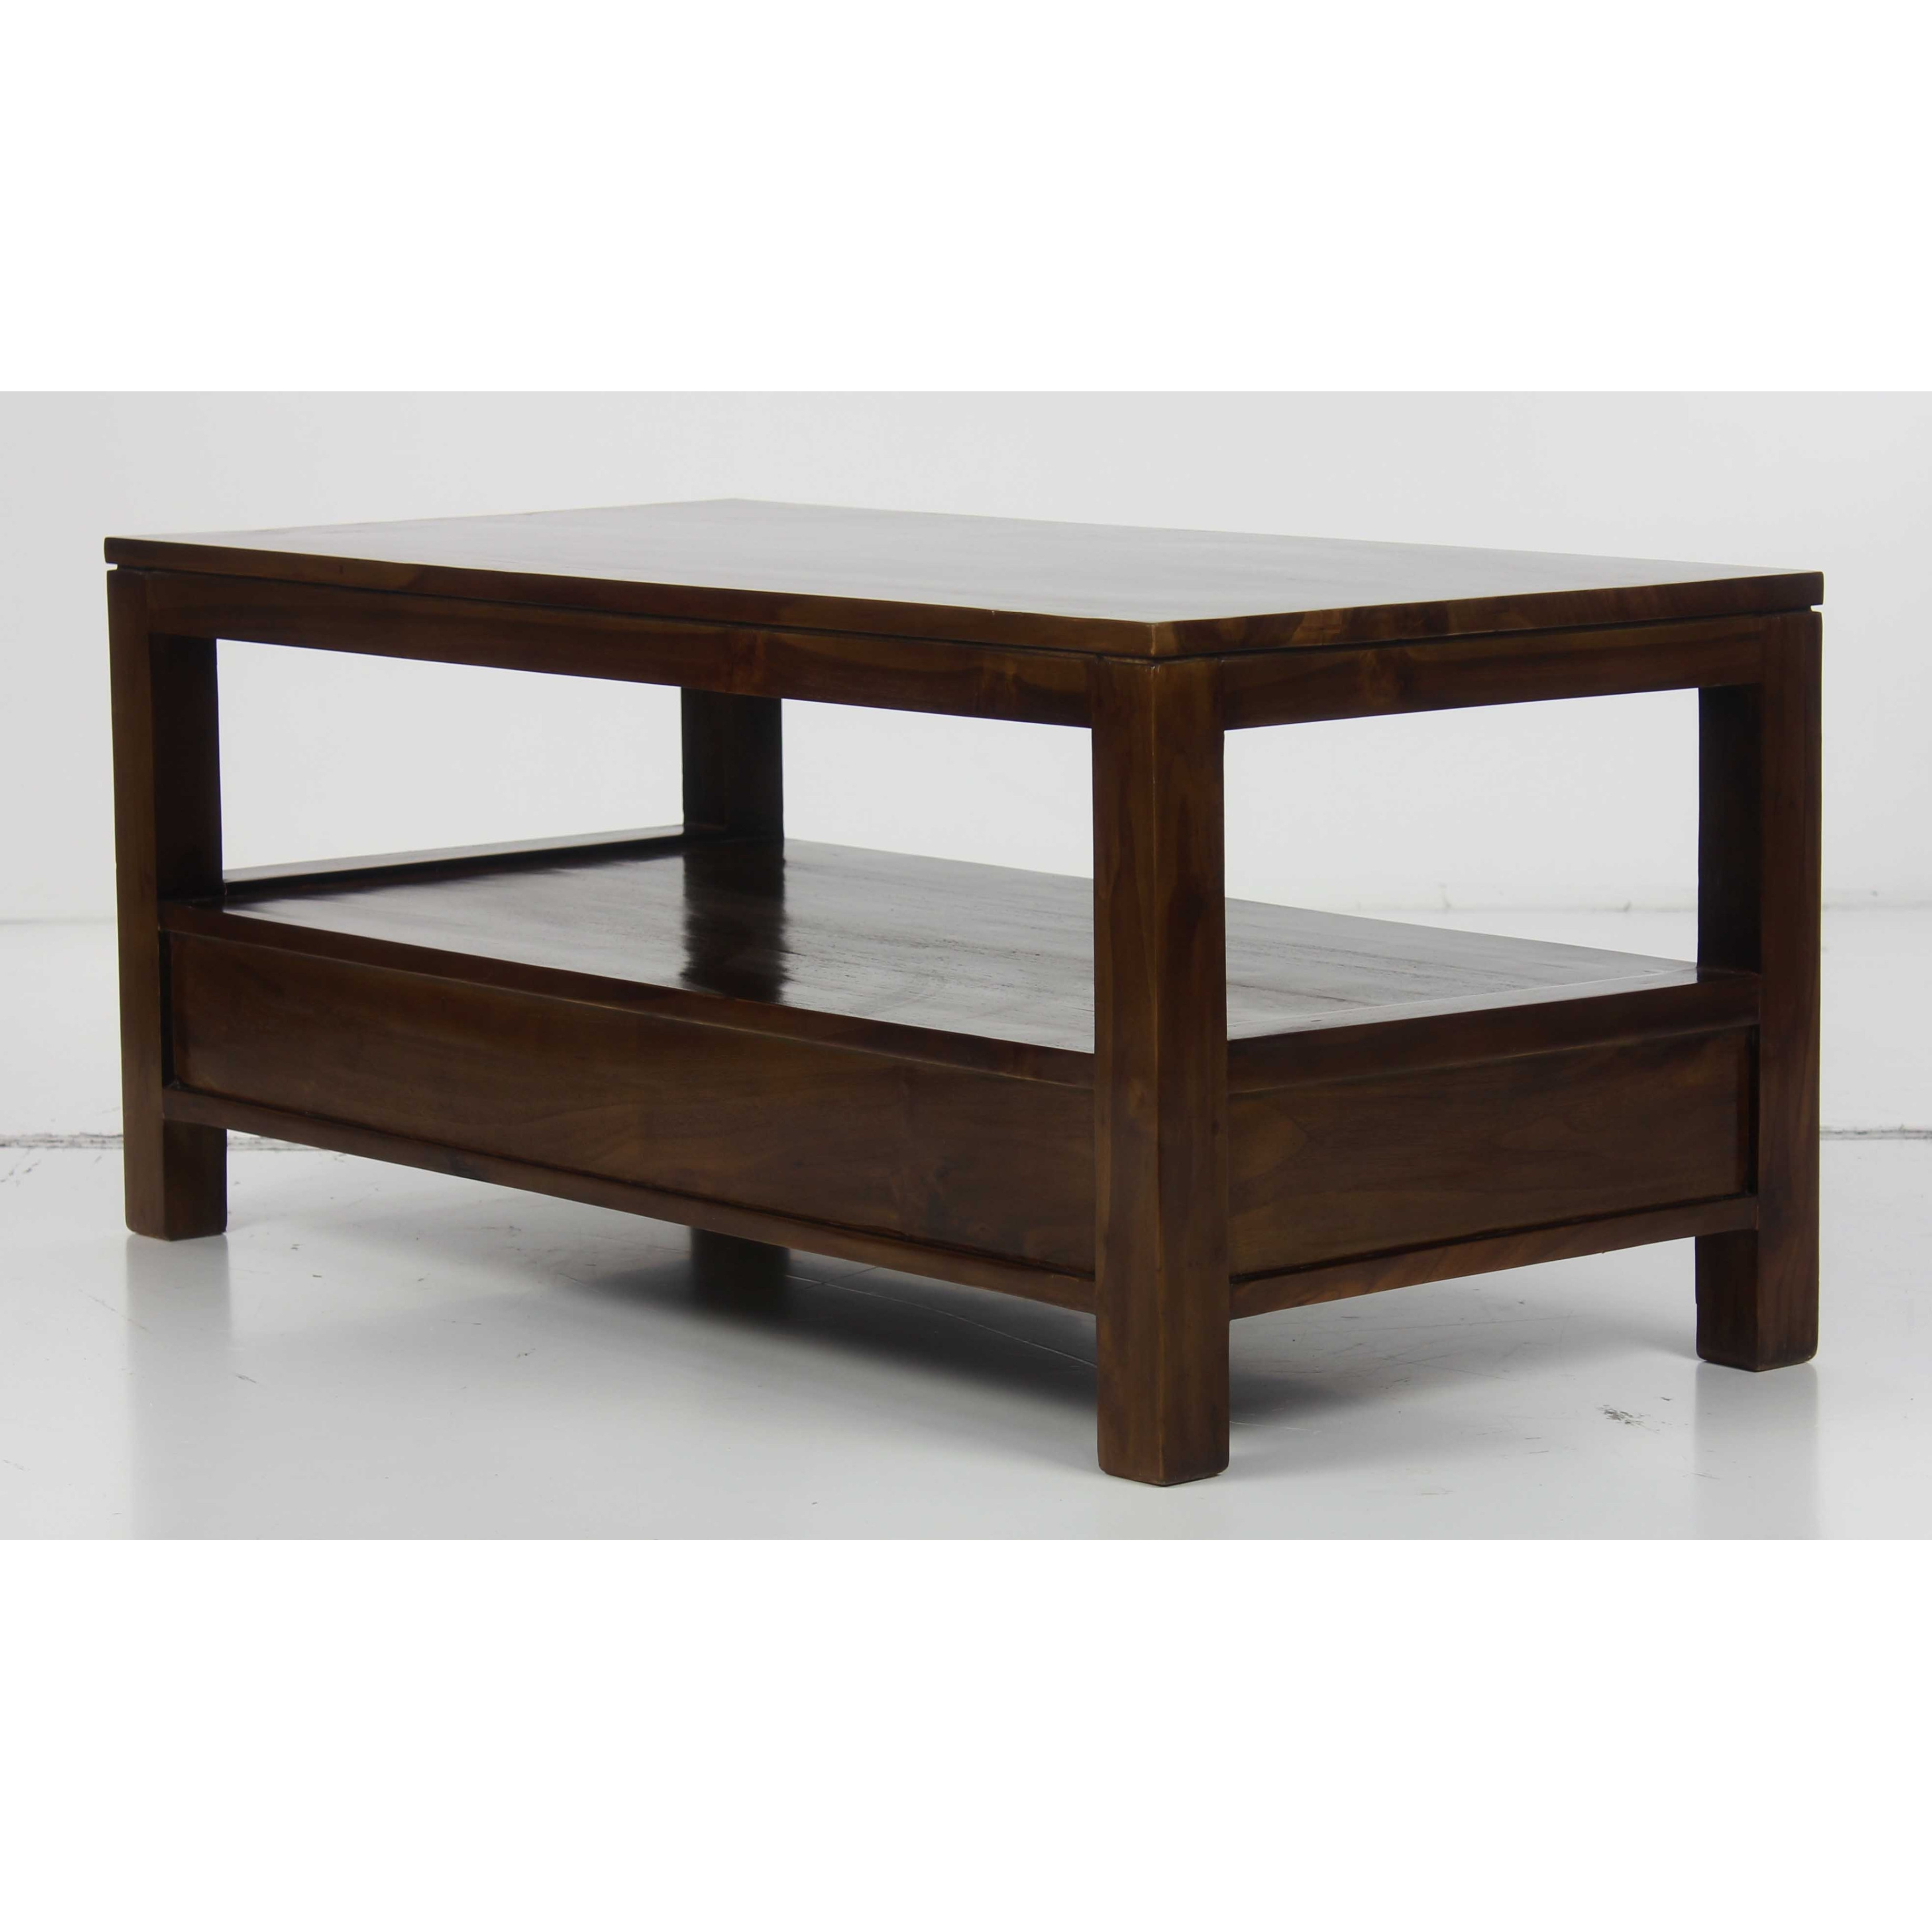 Minimalist Coffee Table | Furniture & Home Décor | Fortytwo intended for Minimalist Coffee Tables (Image 15 of 30)